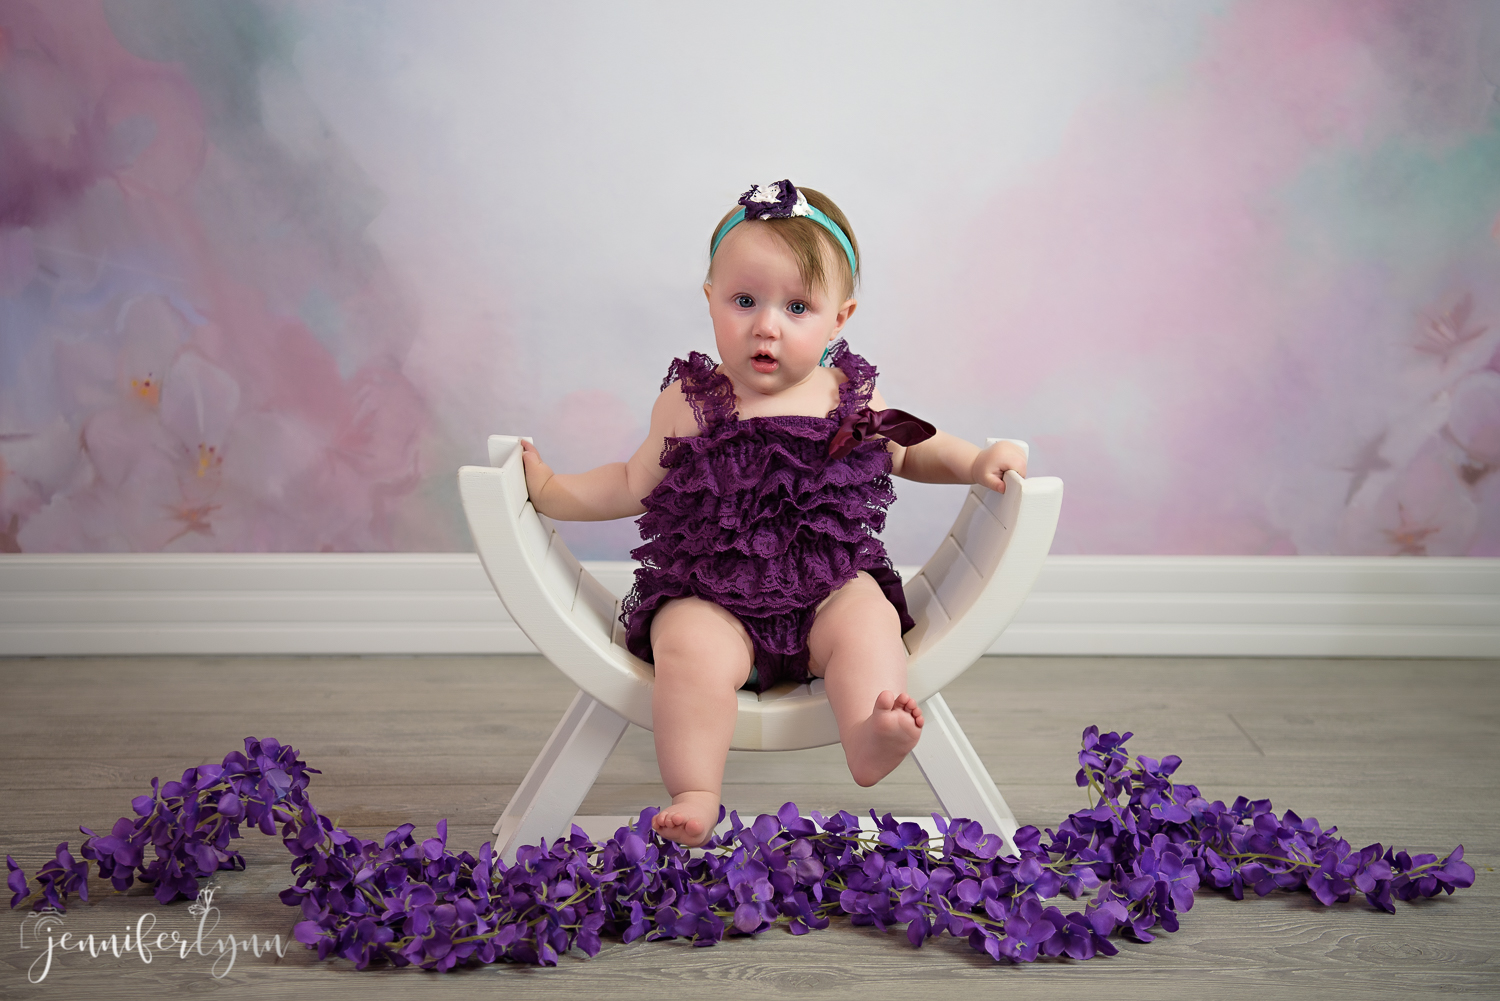 6 Month Sitter Curved White Bench Purple Romper